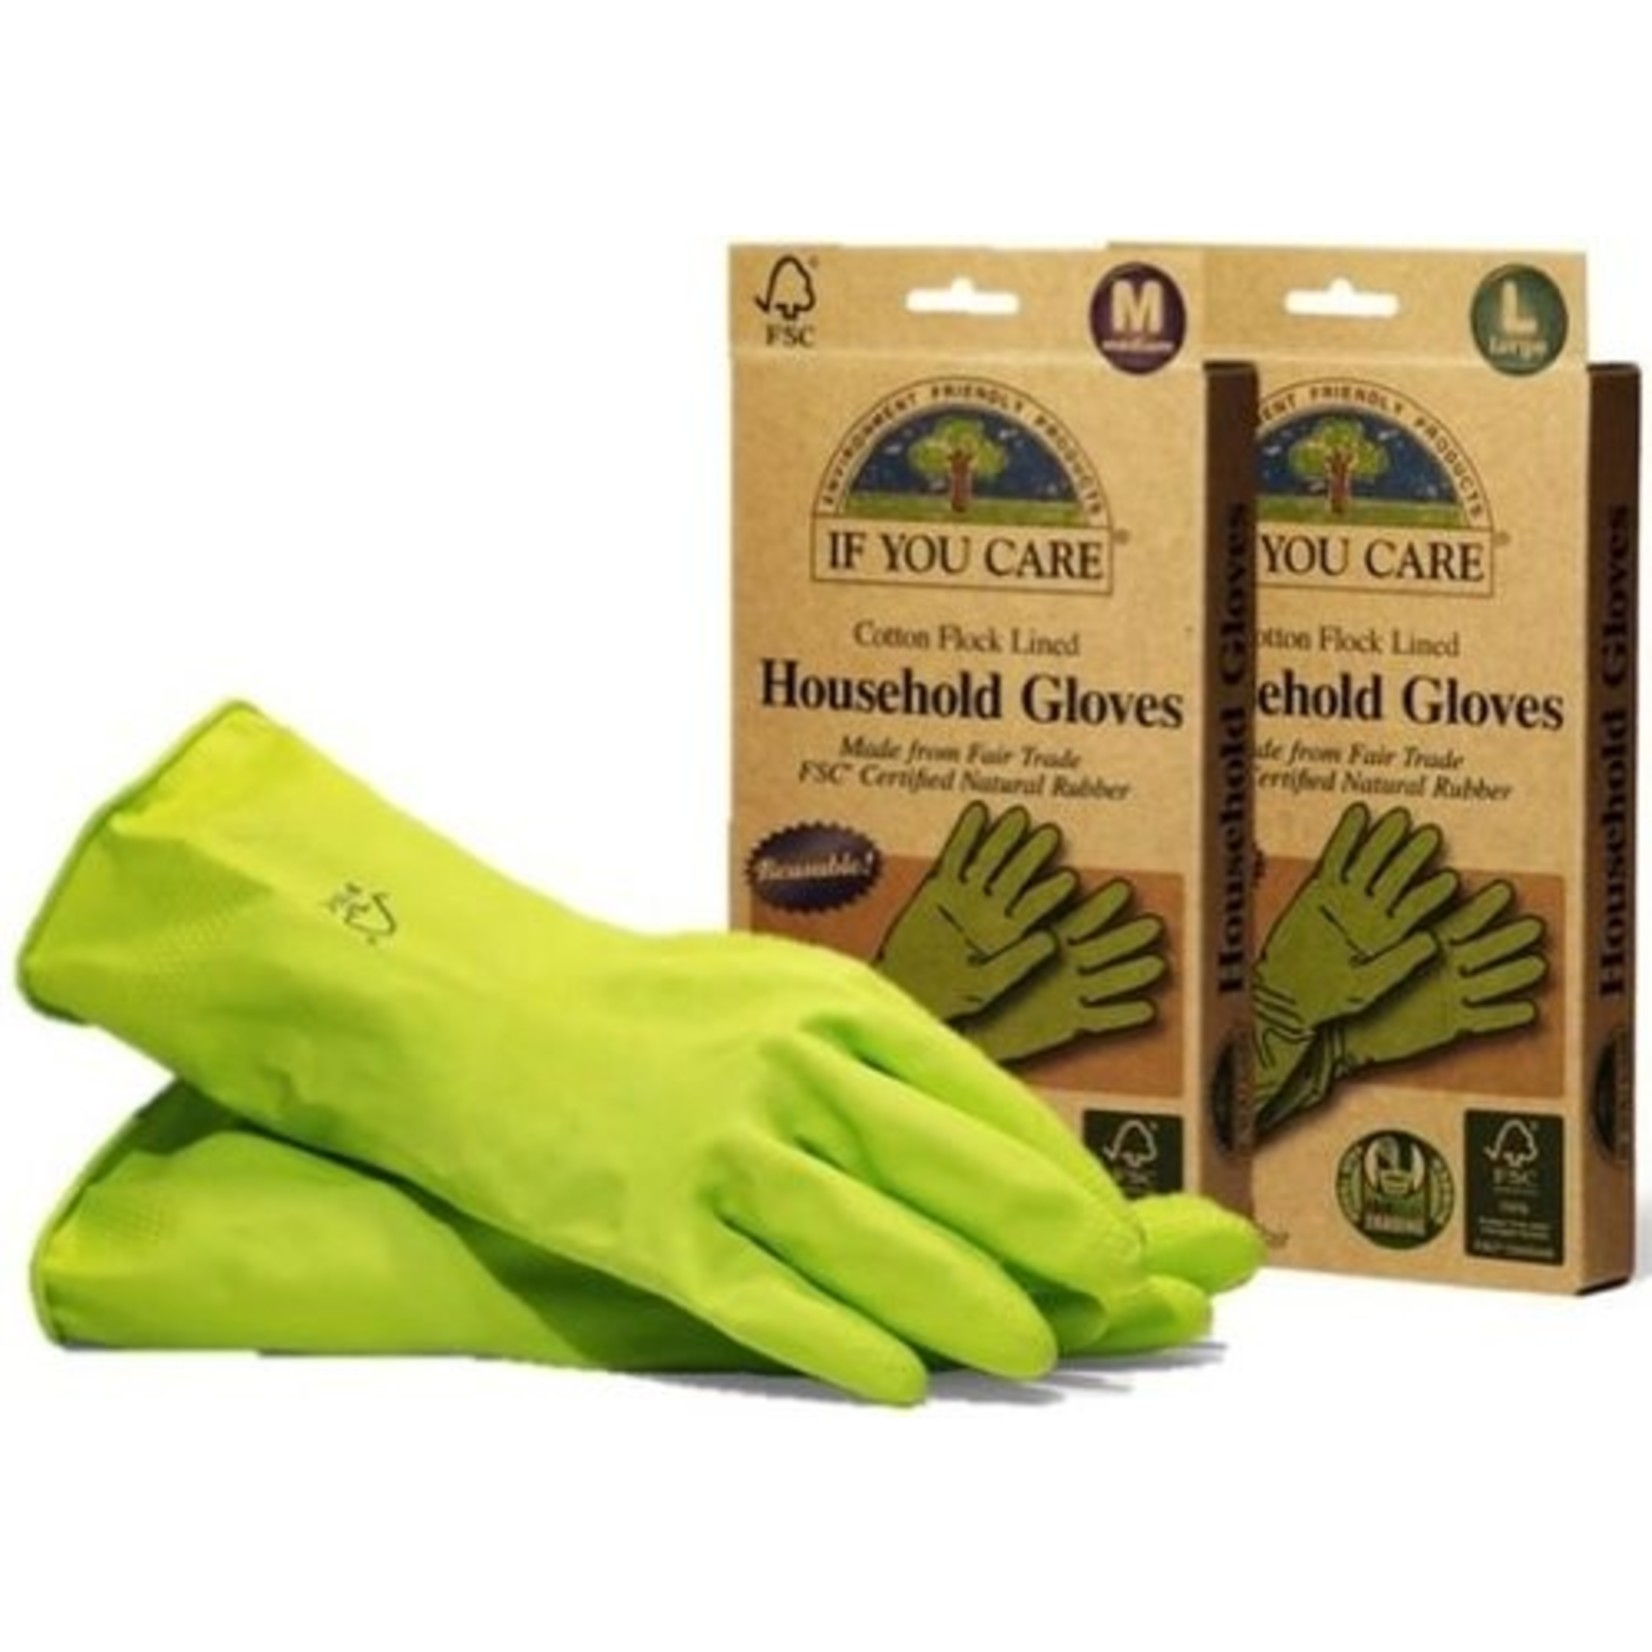 If You Care If You Care Household Gloves